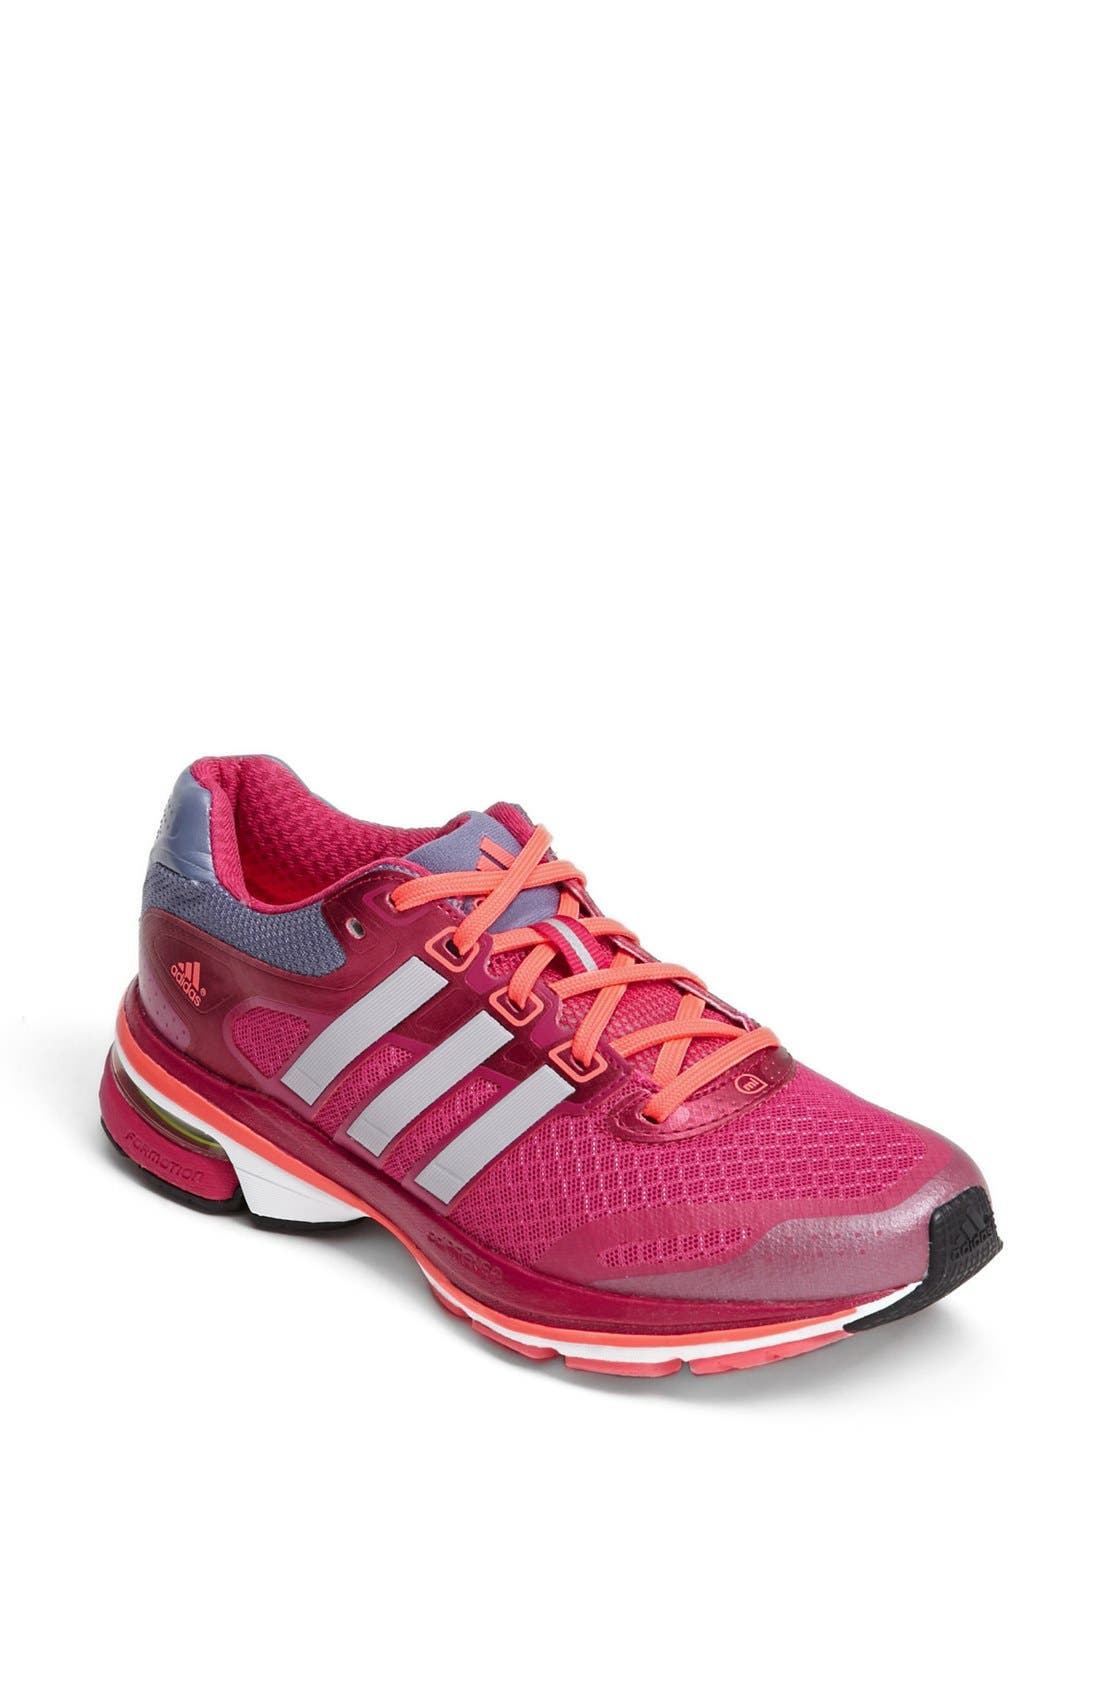 Main Image - adidas 'Supernova Glide 5' Running Shoe (Women)